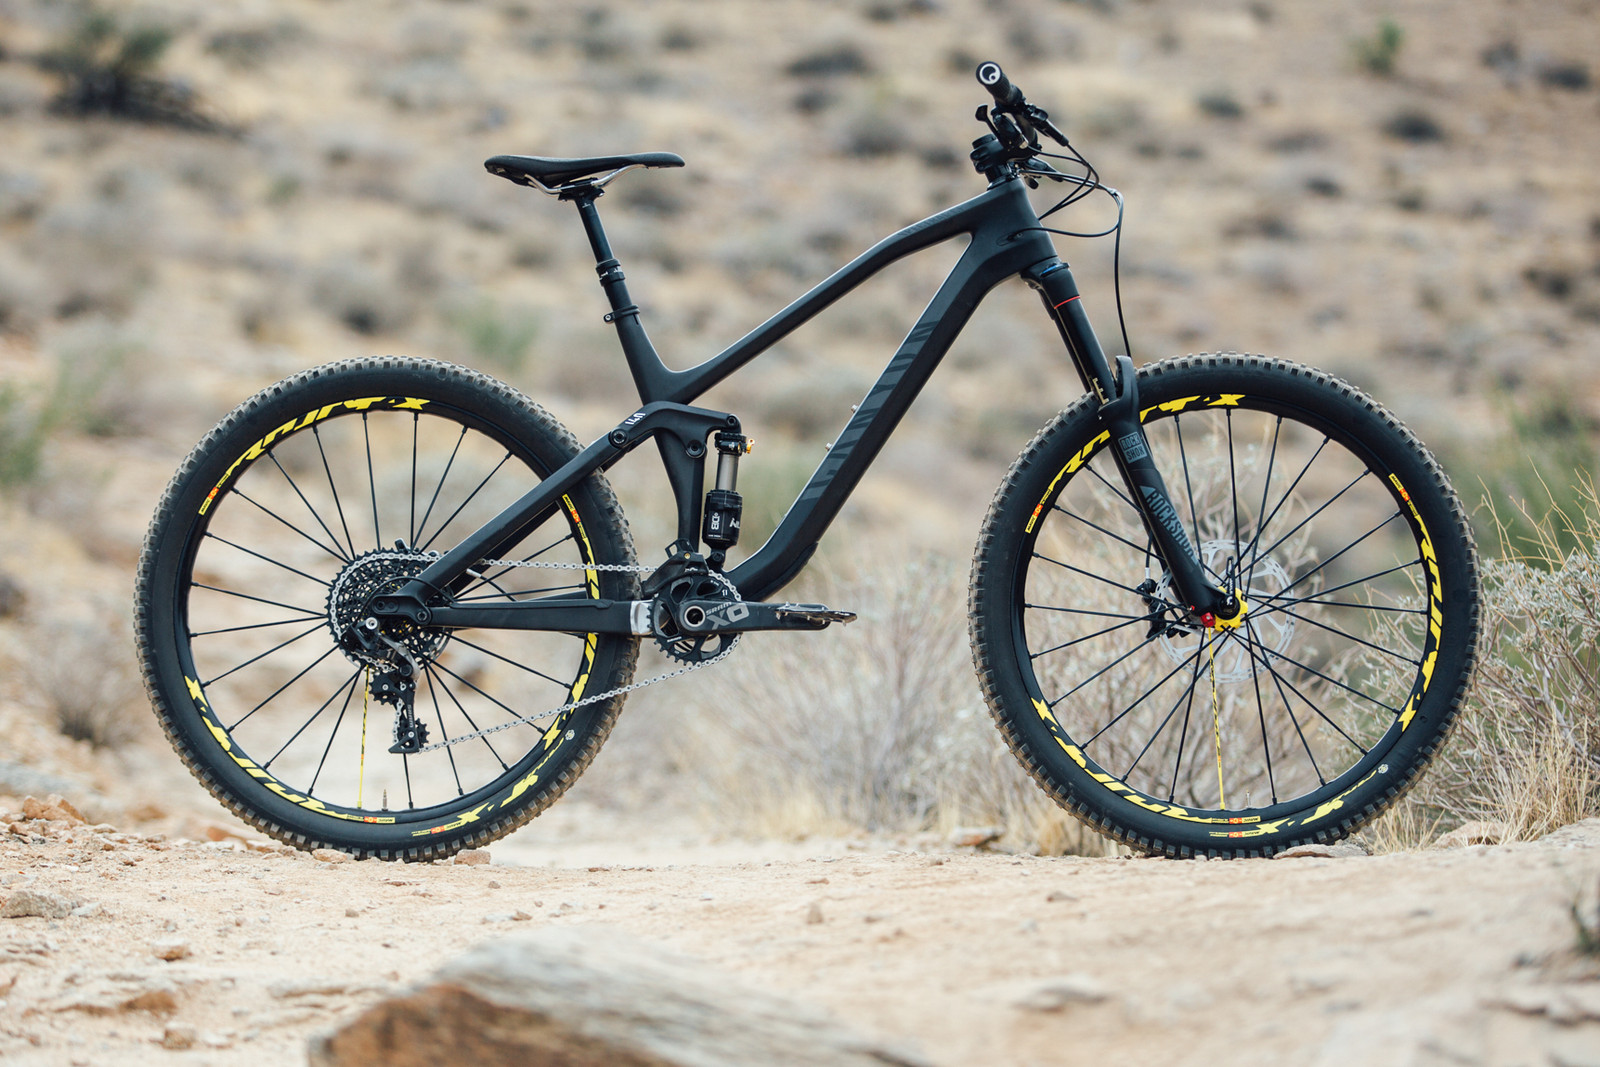 2016 Canyon Spectral CF 9.0 EX - 17 Bikes Tested - 2016 Vital MTB Test Sessions - Mountain Biking Pictures - Vital MTB